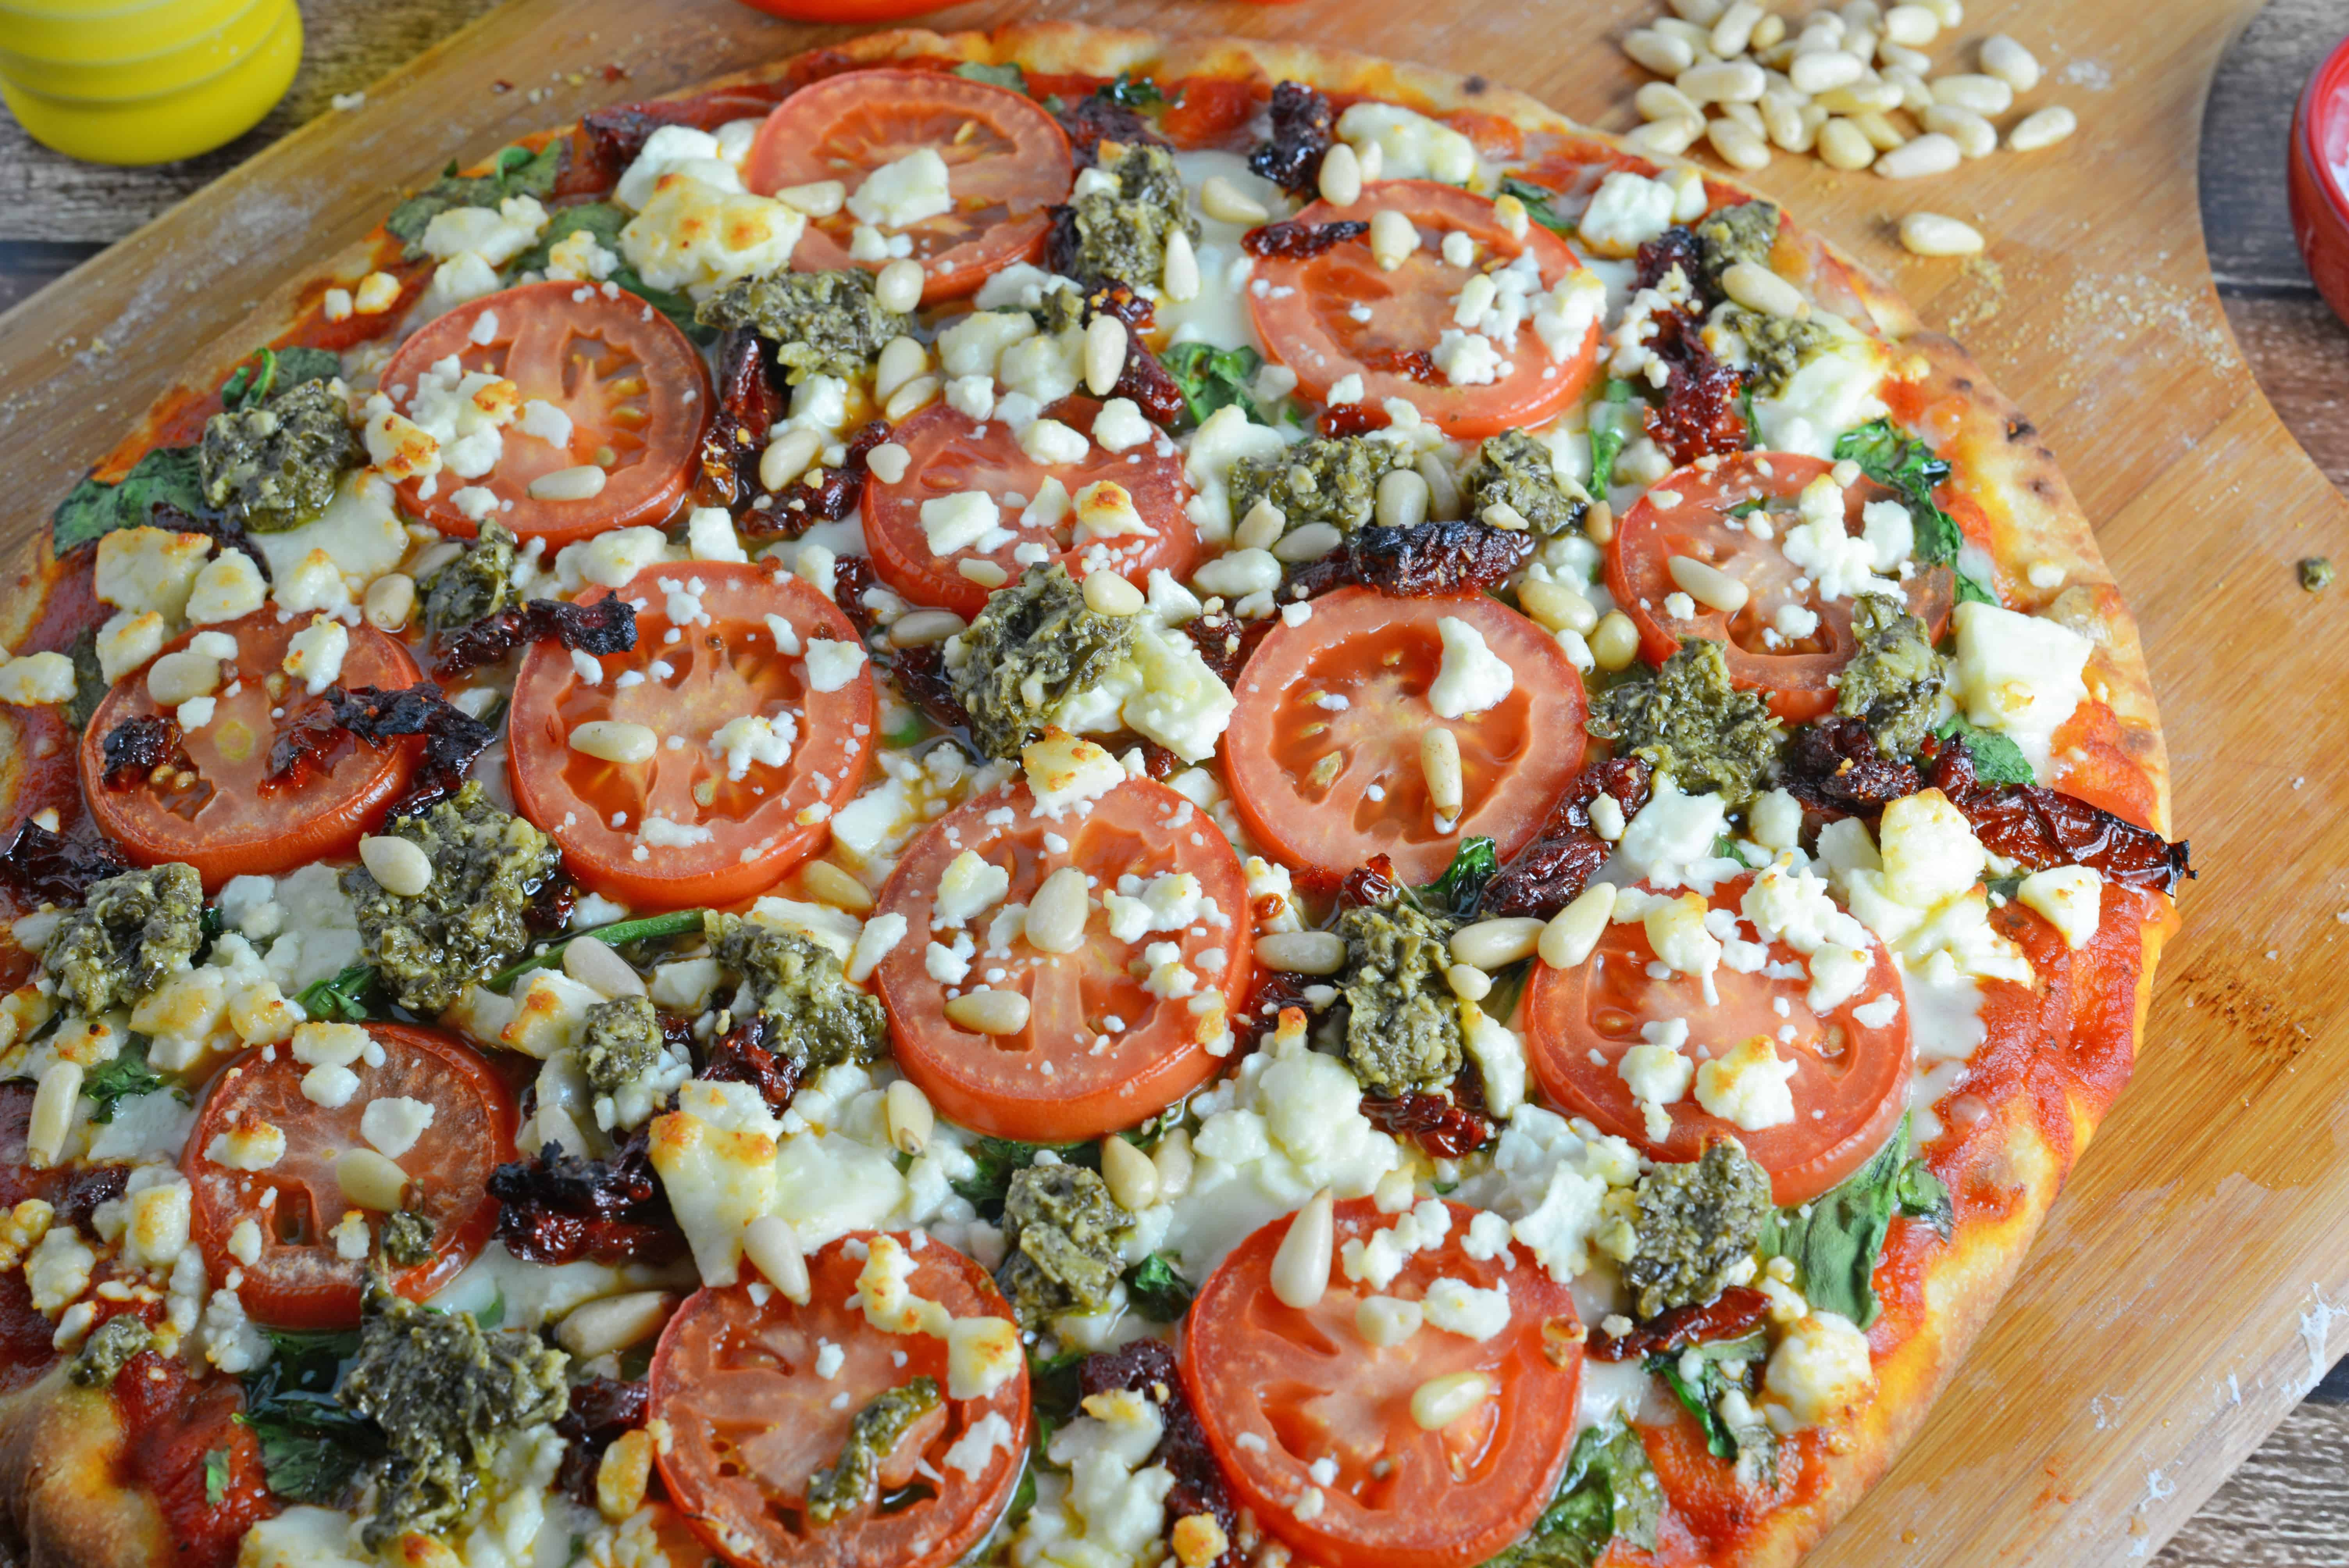 Tomato and Pesto Pizza Recipe - The BEST Homemade Pizza! This is ...